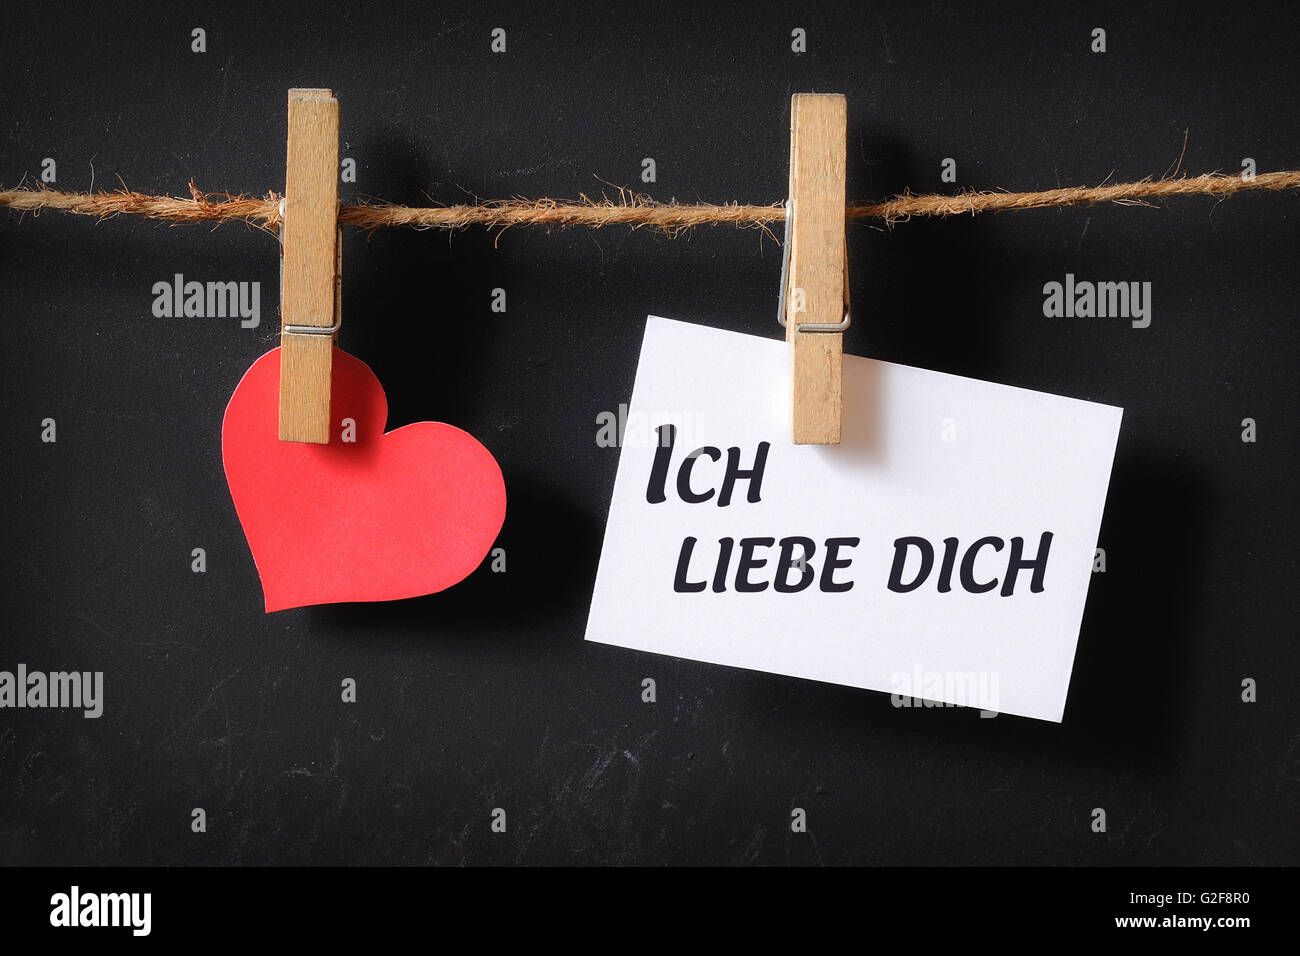 Heart With Ich Liebe Dich Poster Hanging With Blackboard Background Stock Photo Alamy